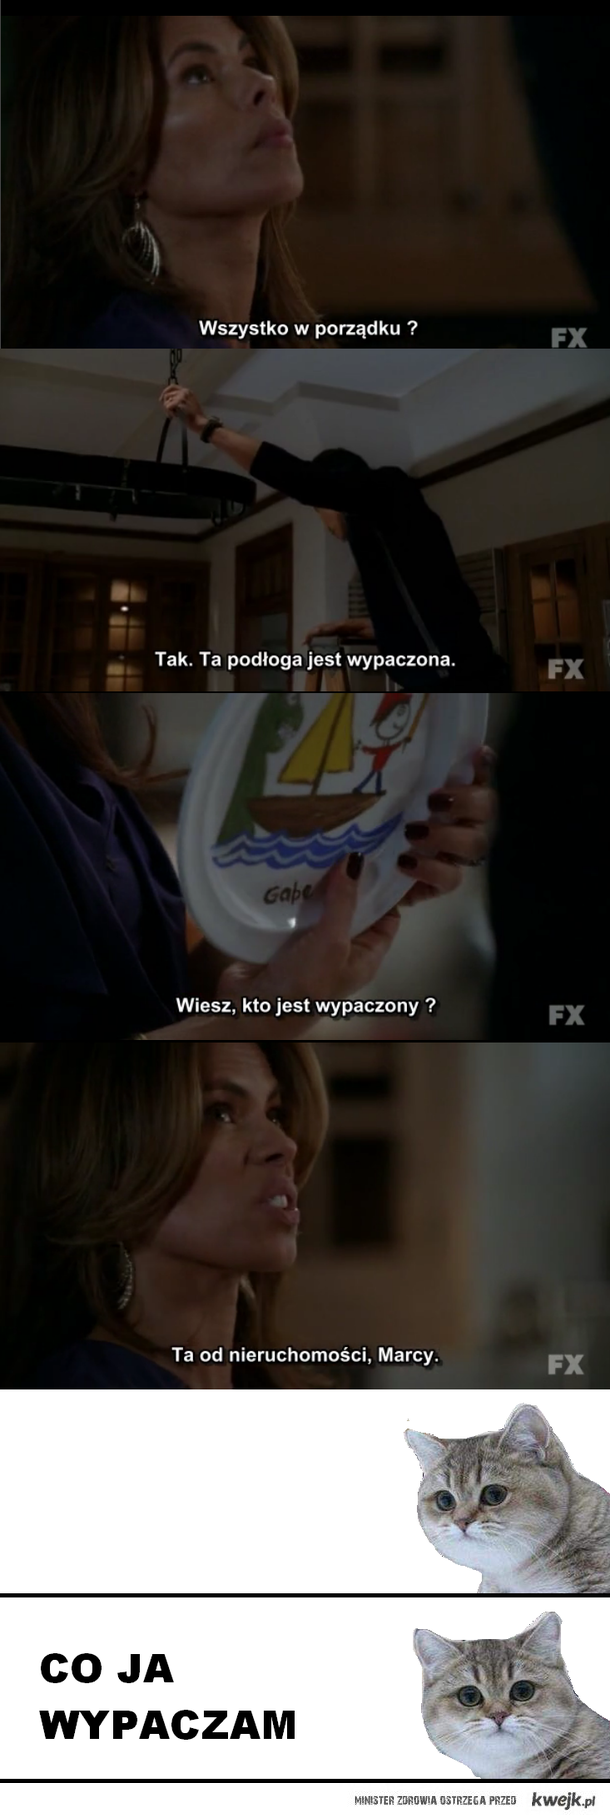 American Horror Story, dialog.